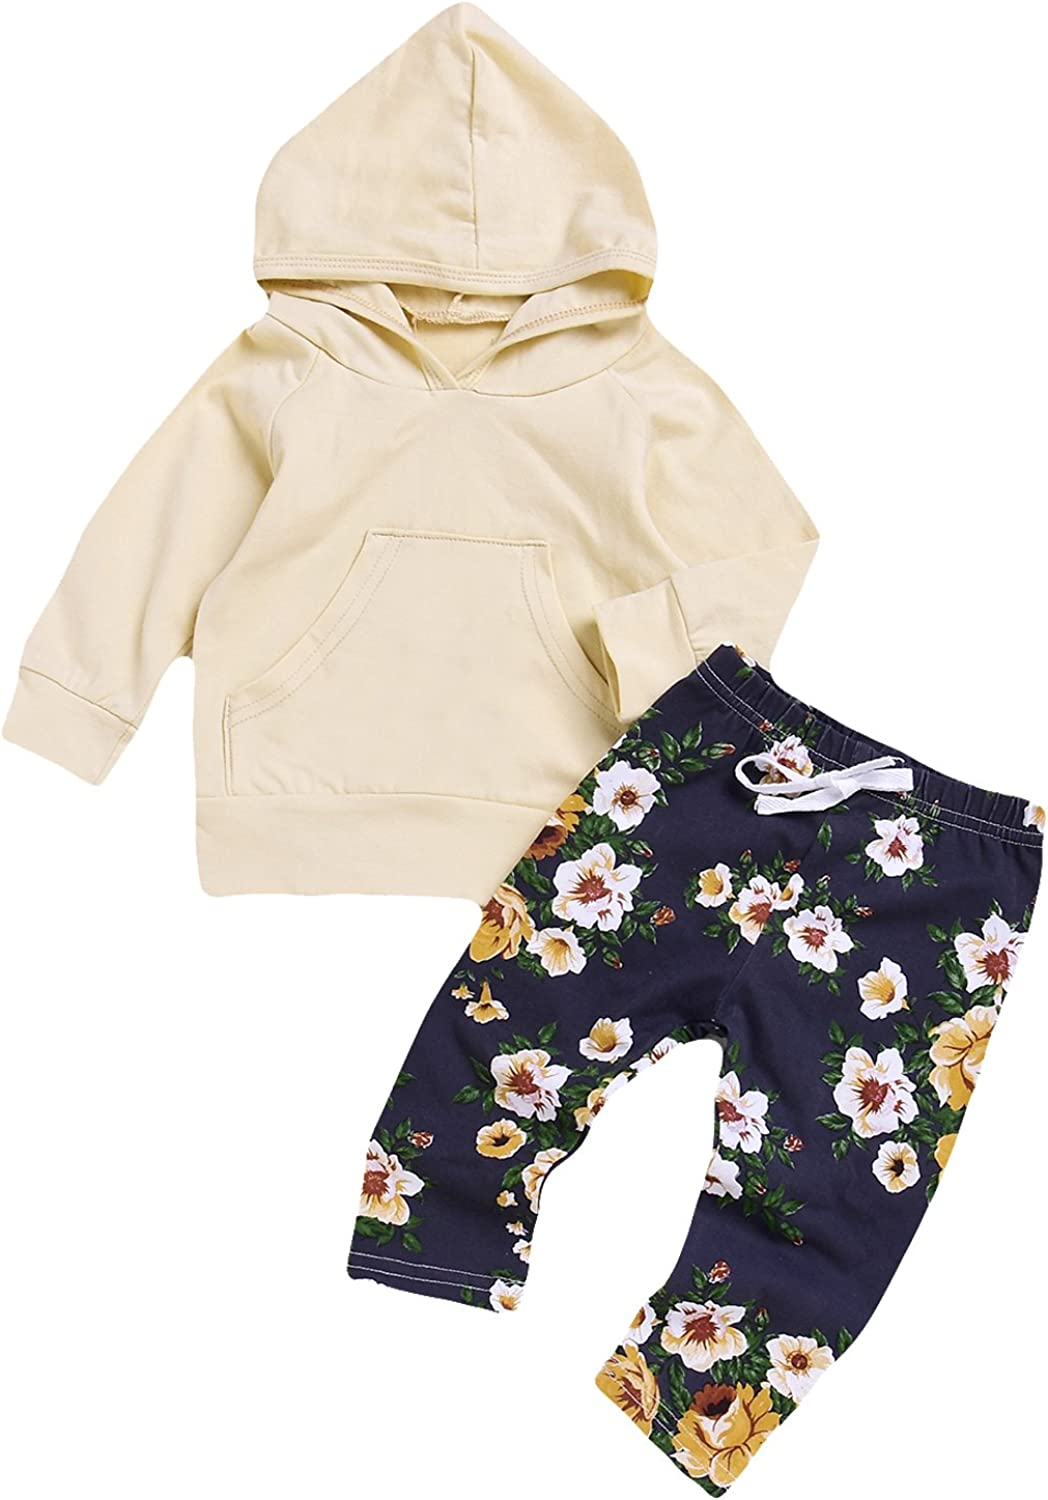 Baby Girls Outfit Sets Floral Printed Hoodie Pants 2 PCS Toddler Jacket